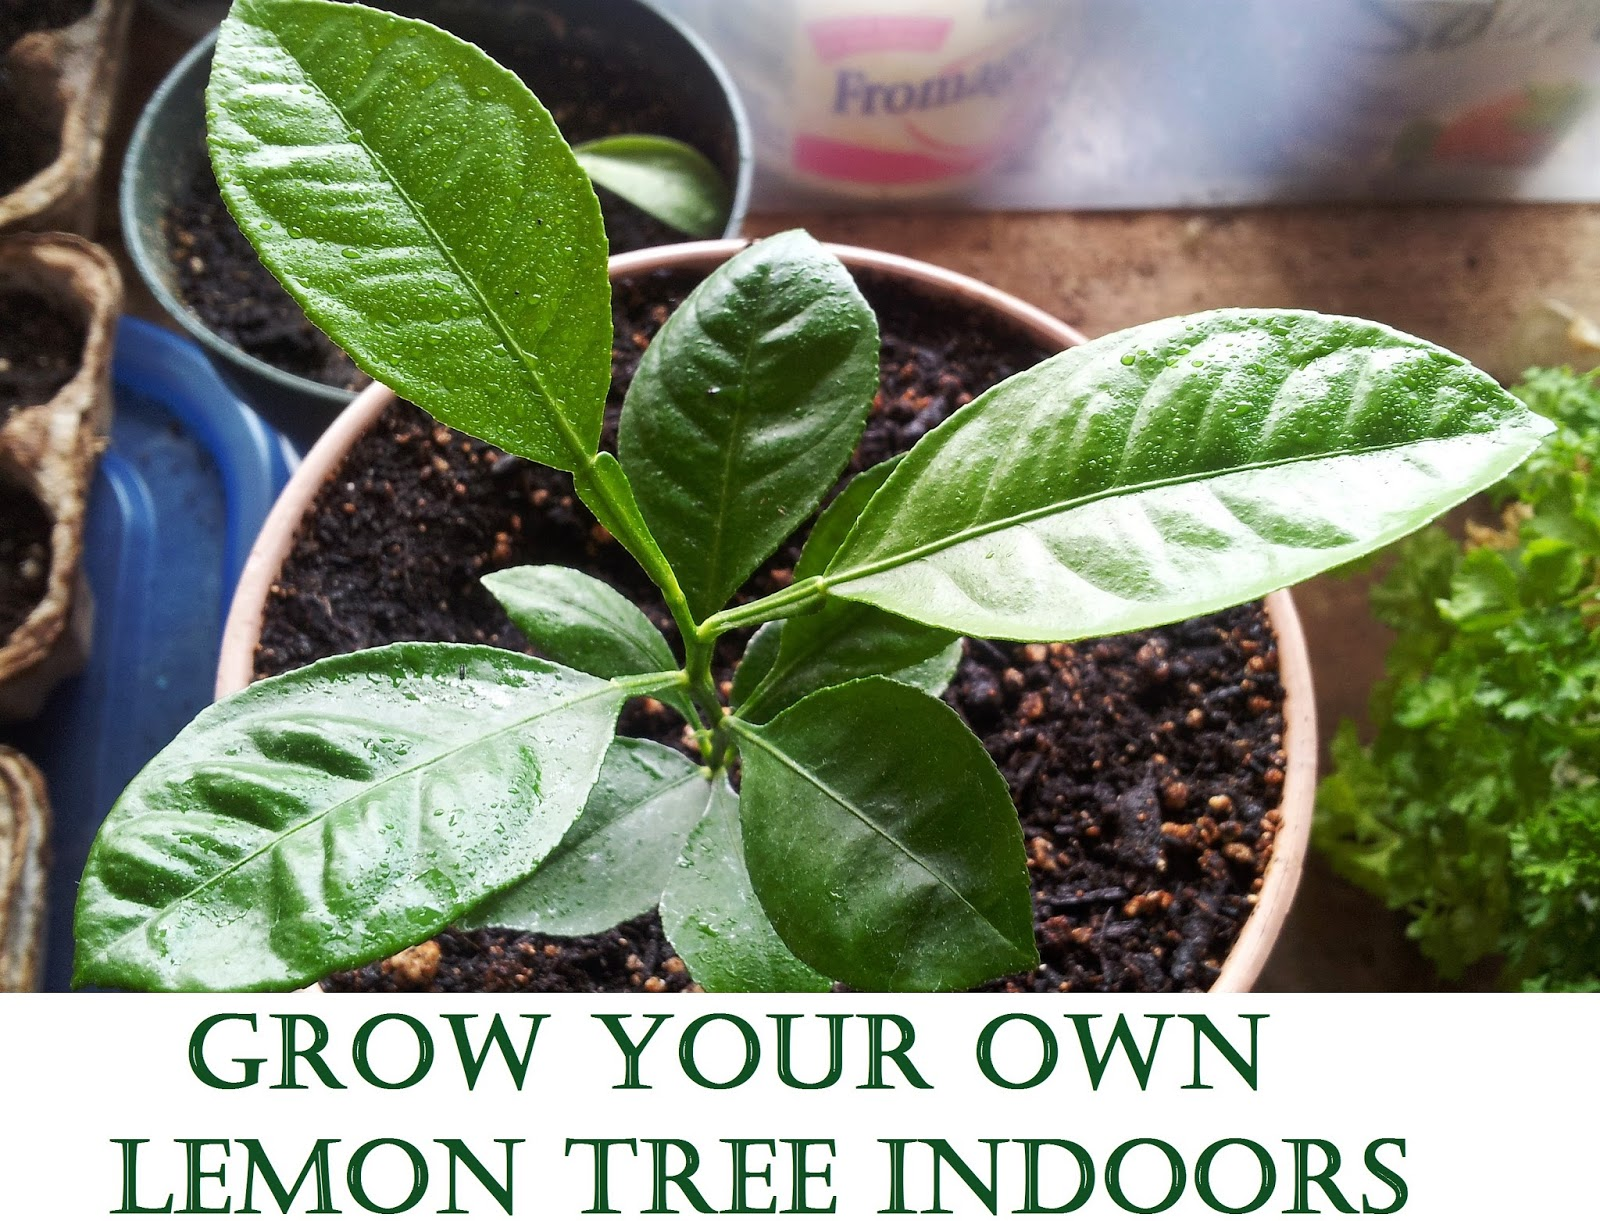 Grow Your Own Lemon Tree Out Of Store Bought Lemons In 11 Easy Steps-homesthetics (17)